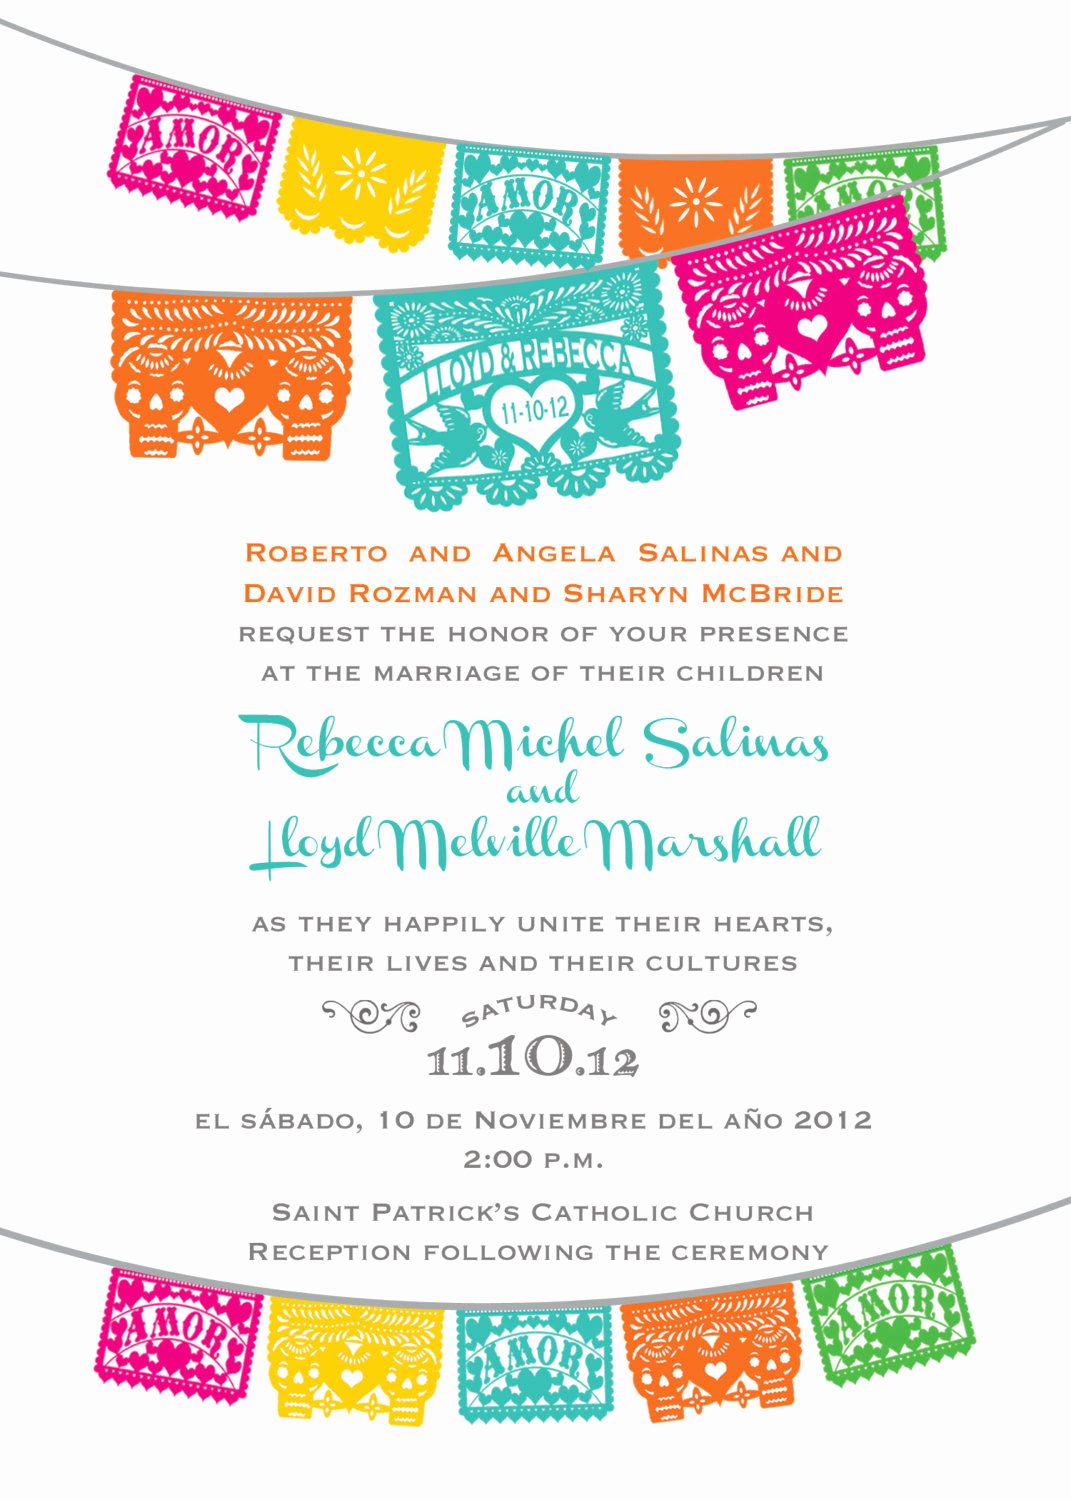 Papel Picado Invitation Template Awesome Day Of the Dead Skull Papel Picado Wedding Invitation I